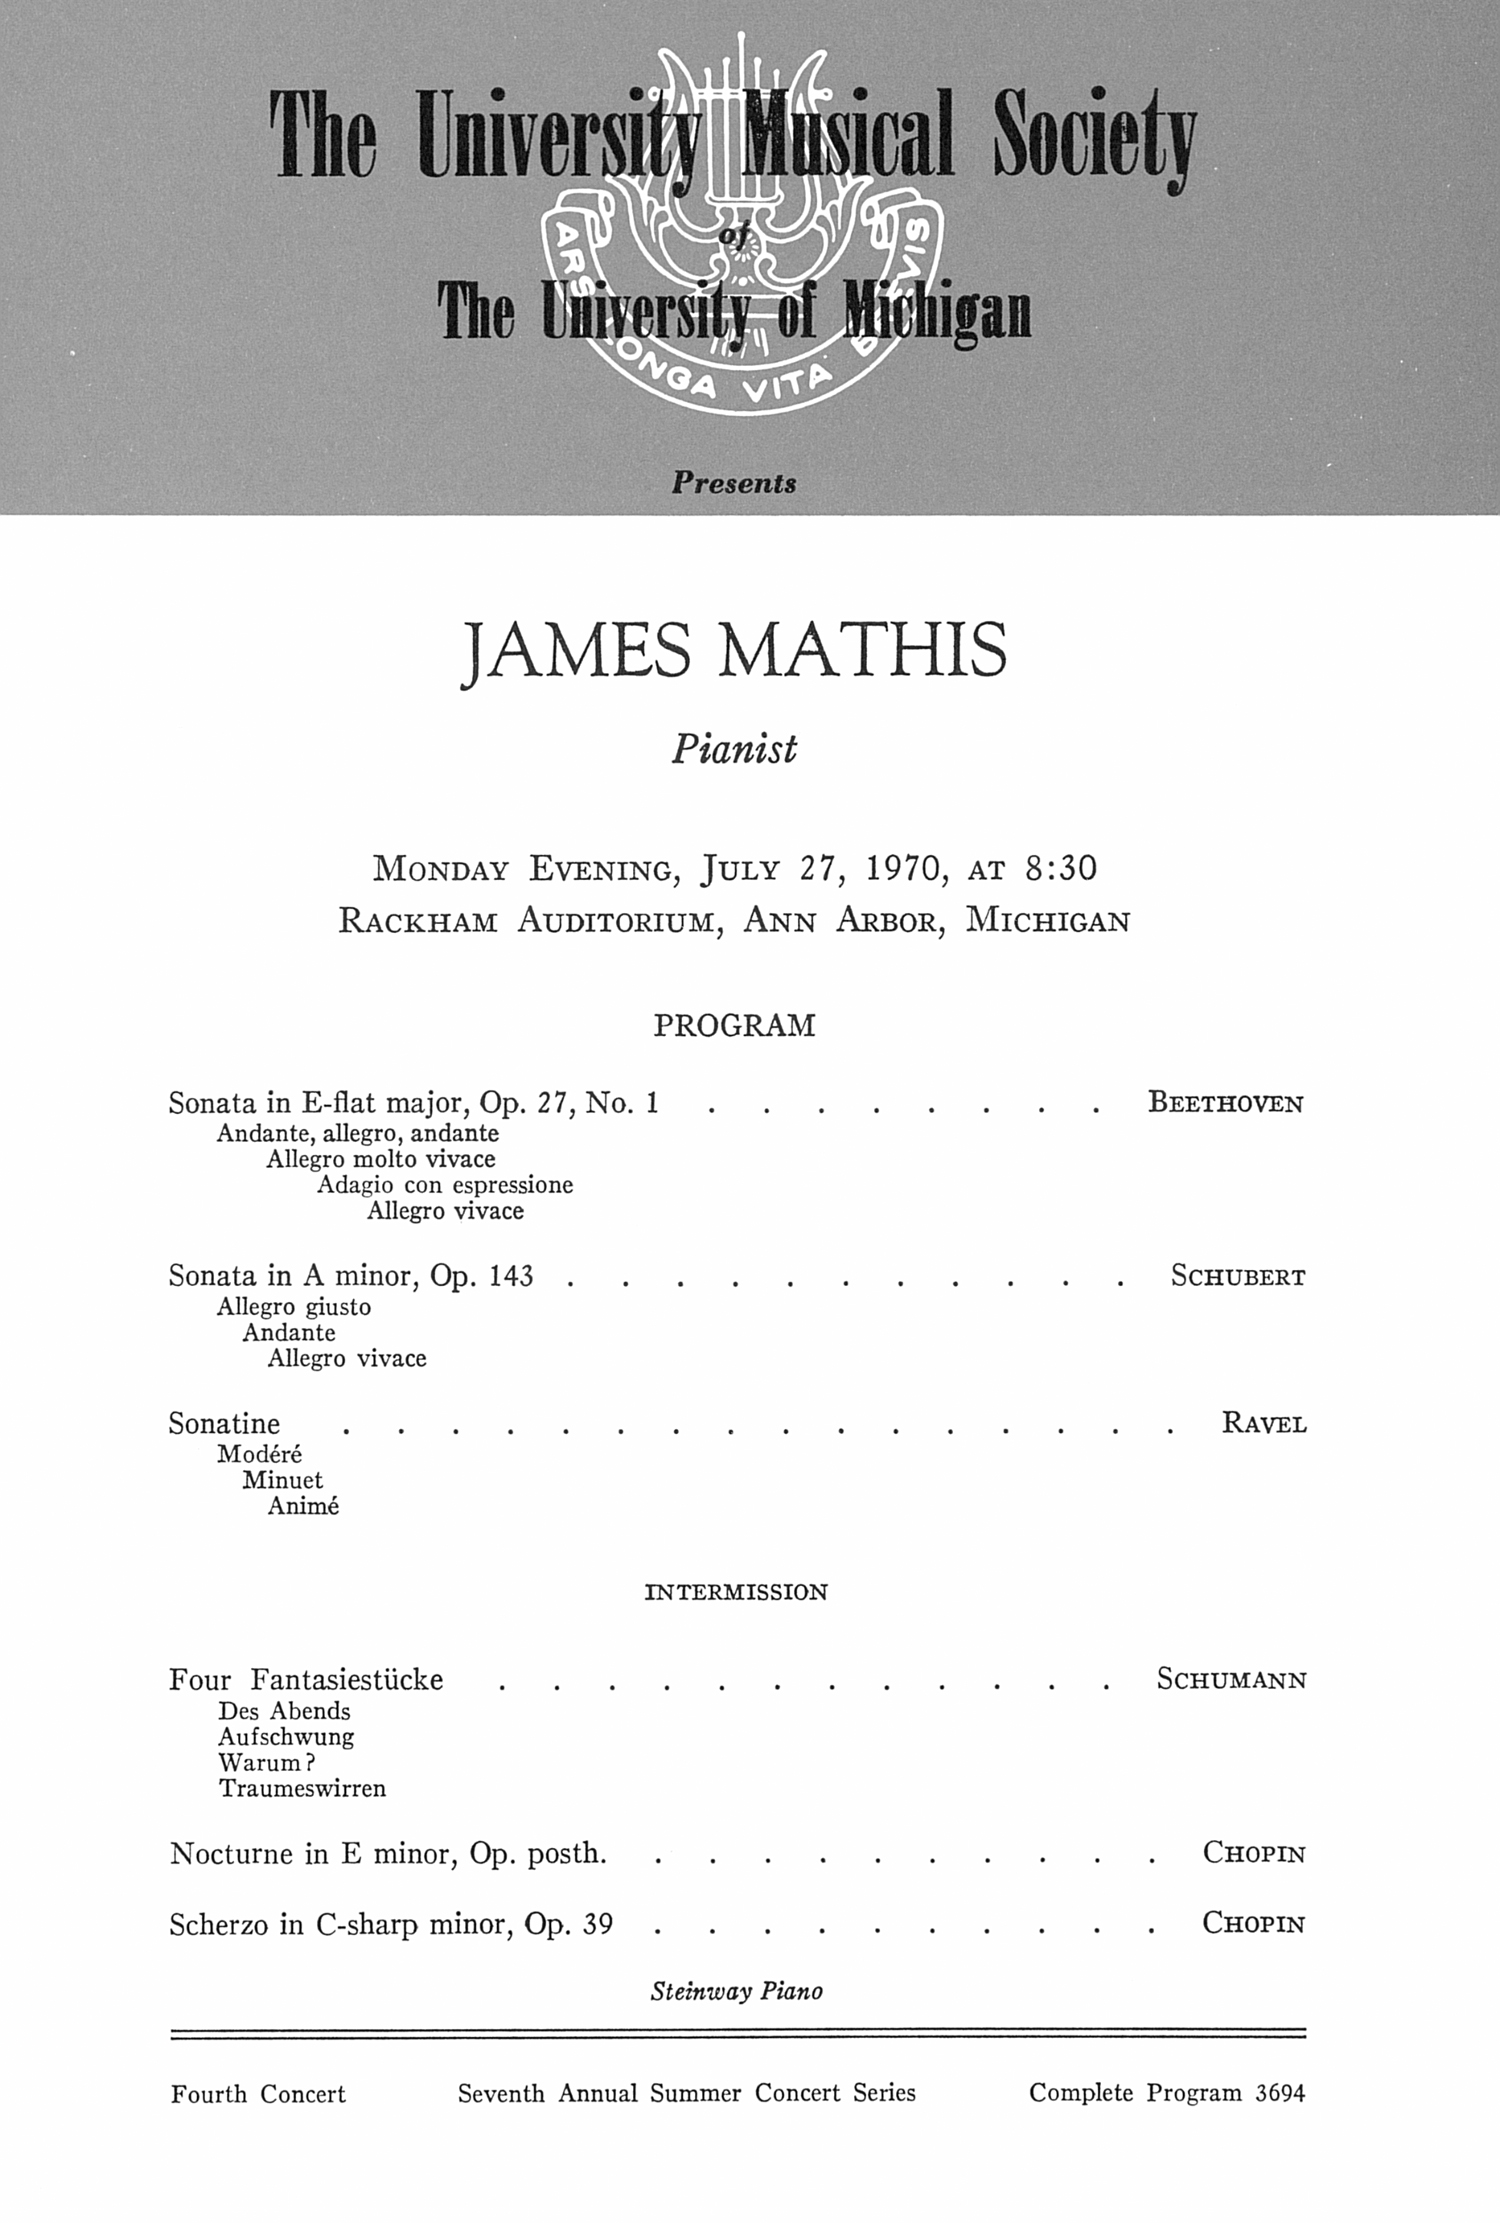 UMS Concert Program, July 27, 1970: James Mathis --  image